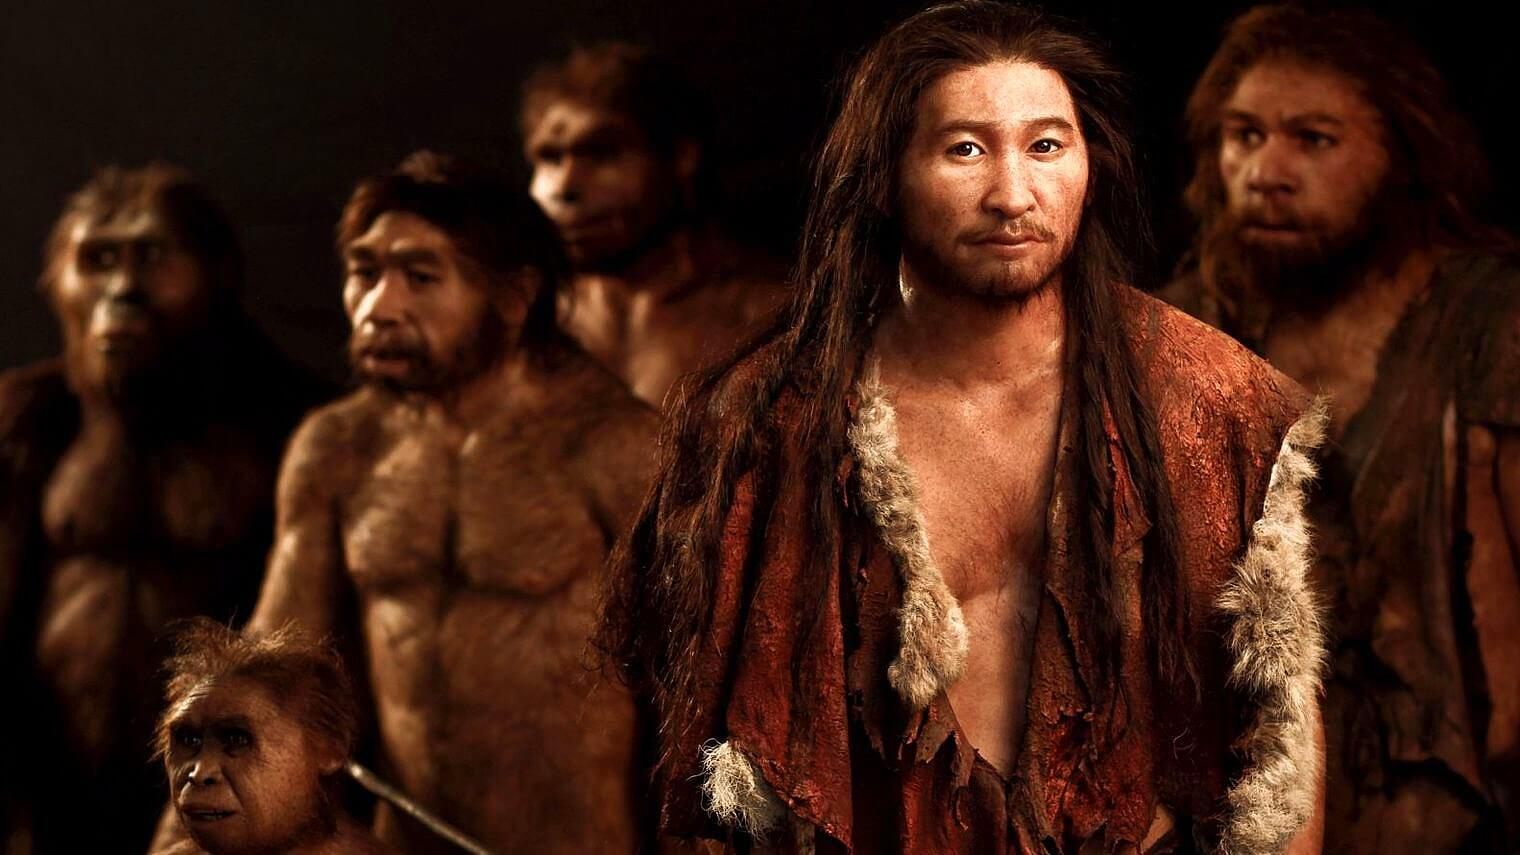 Is it true that our ancestors killed the Neanderthals?